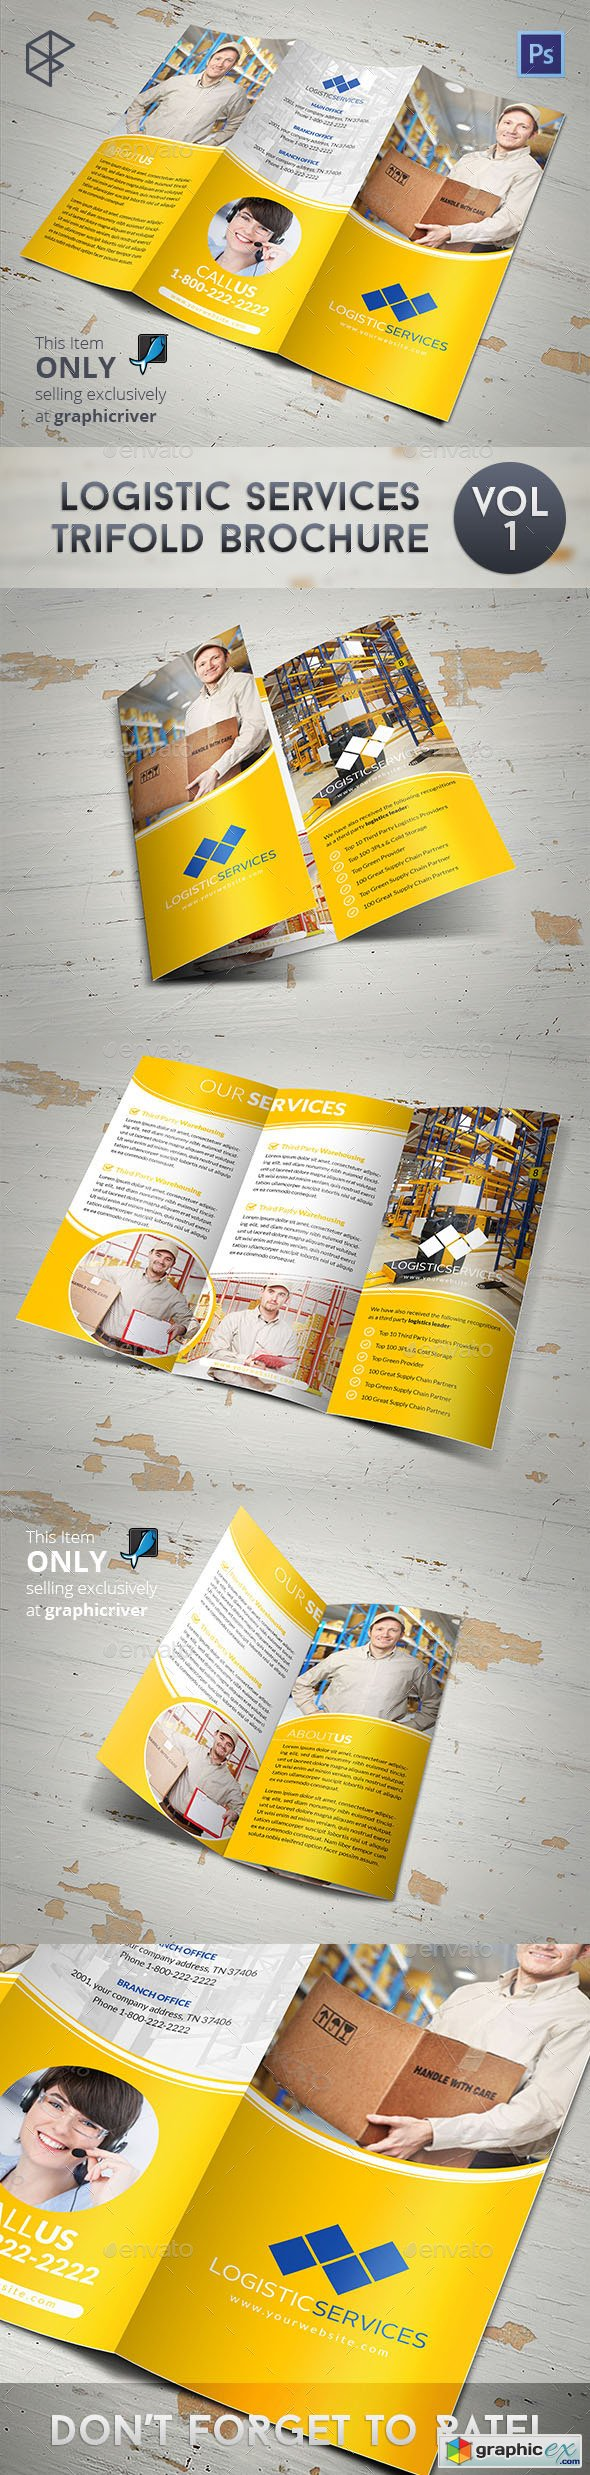 Logistic Services Tri-Fold Brochure